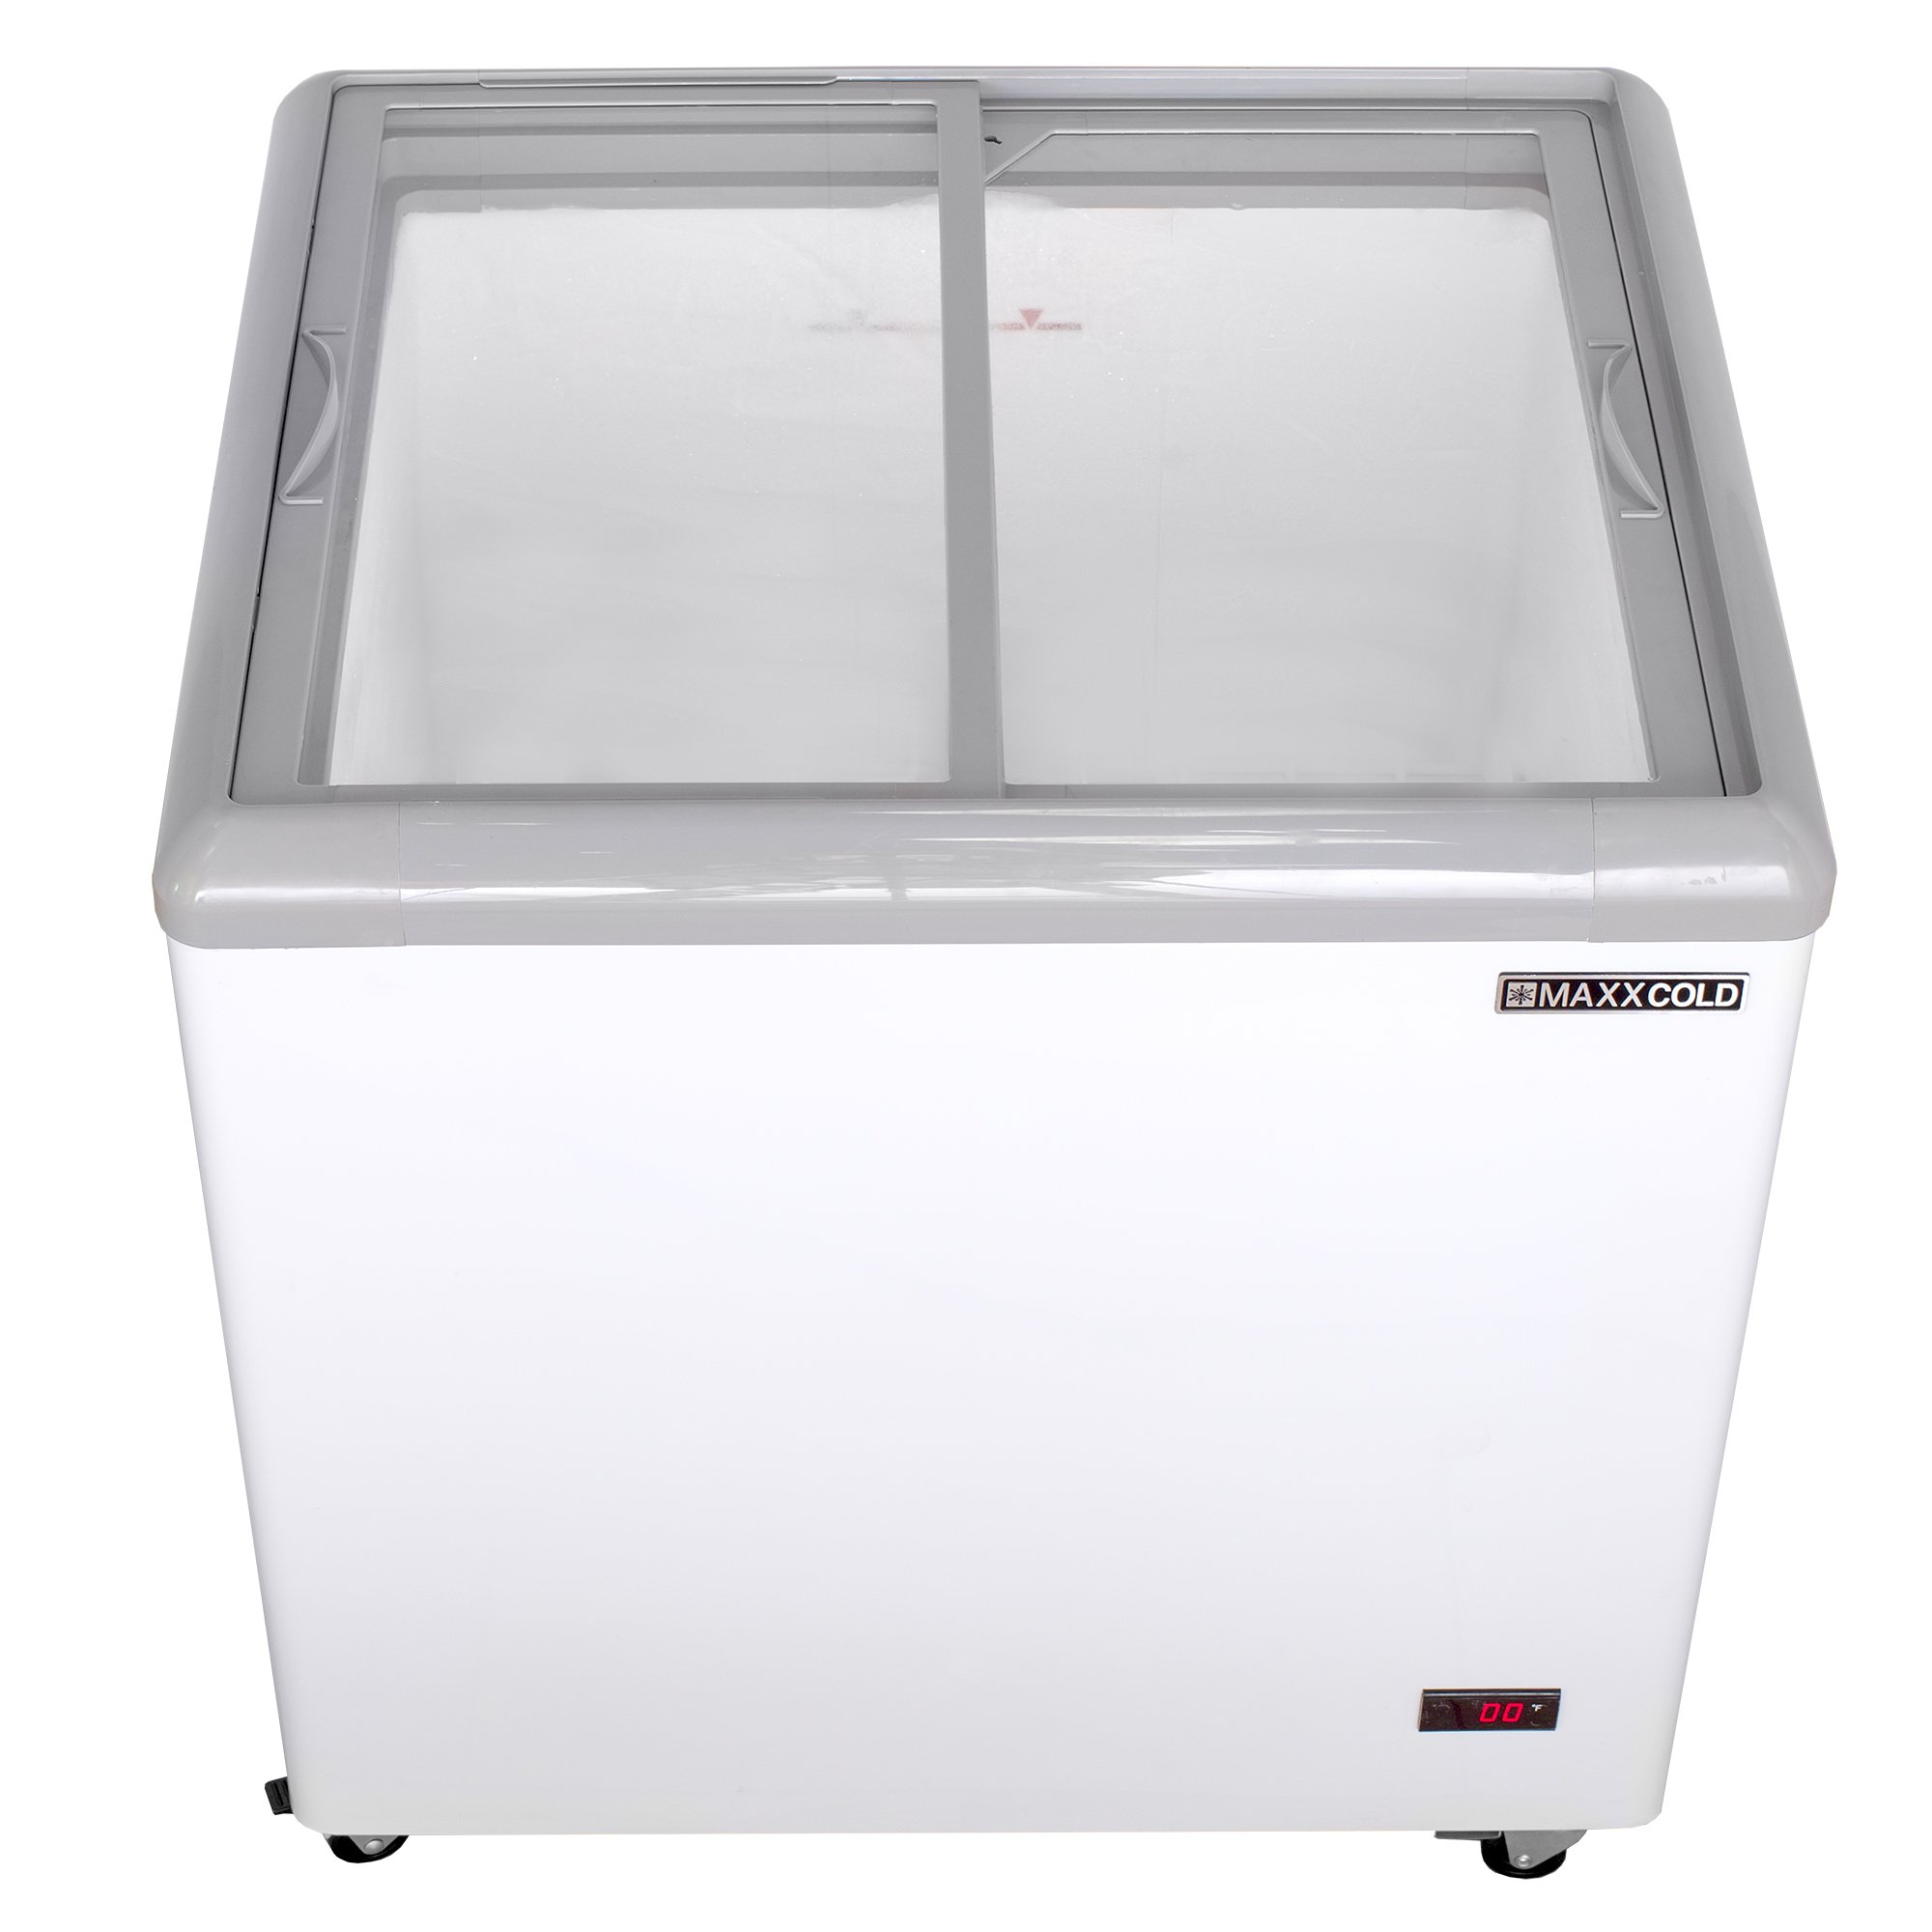 "Maxx Cold MXF31F 31"" 7.5 cu ft Commercial Mobile Ice Cream Display Freezer"